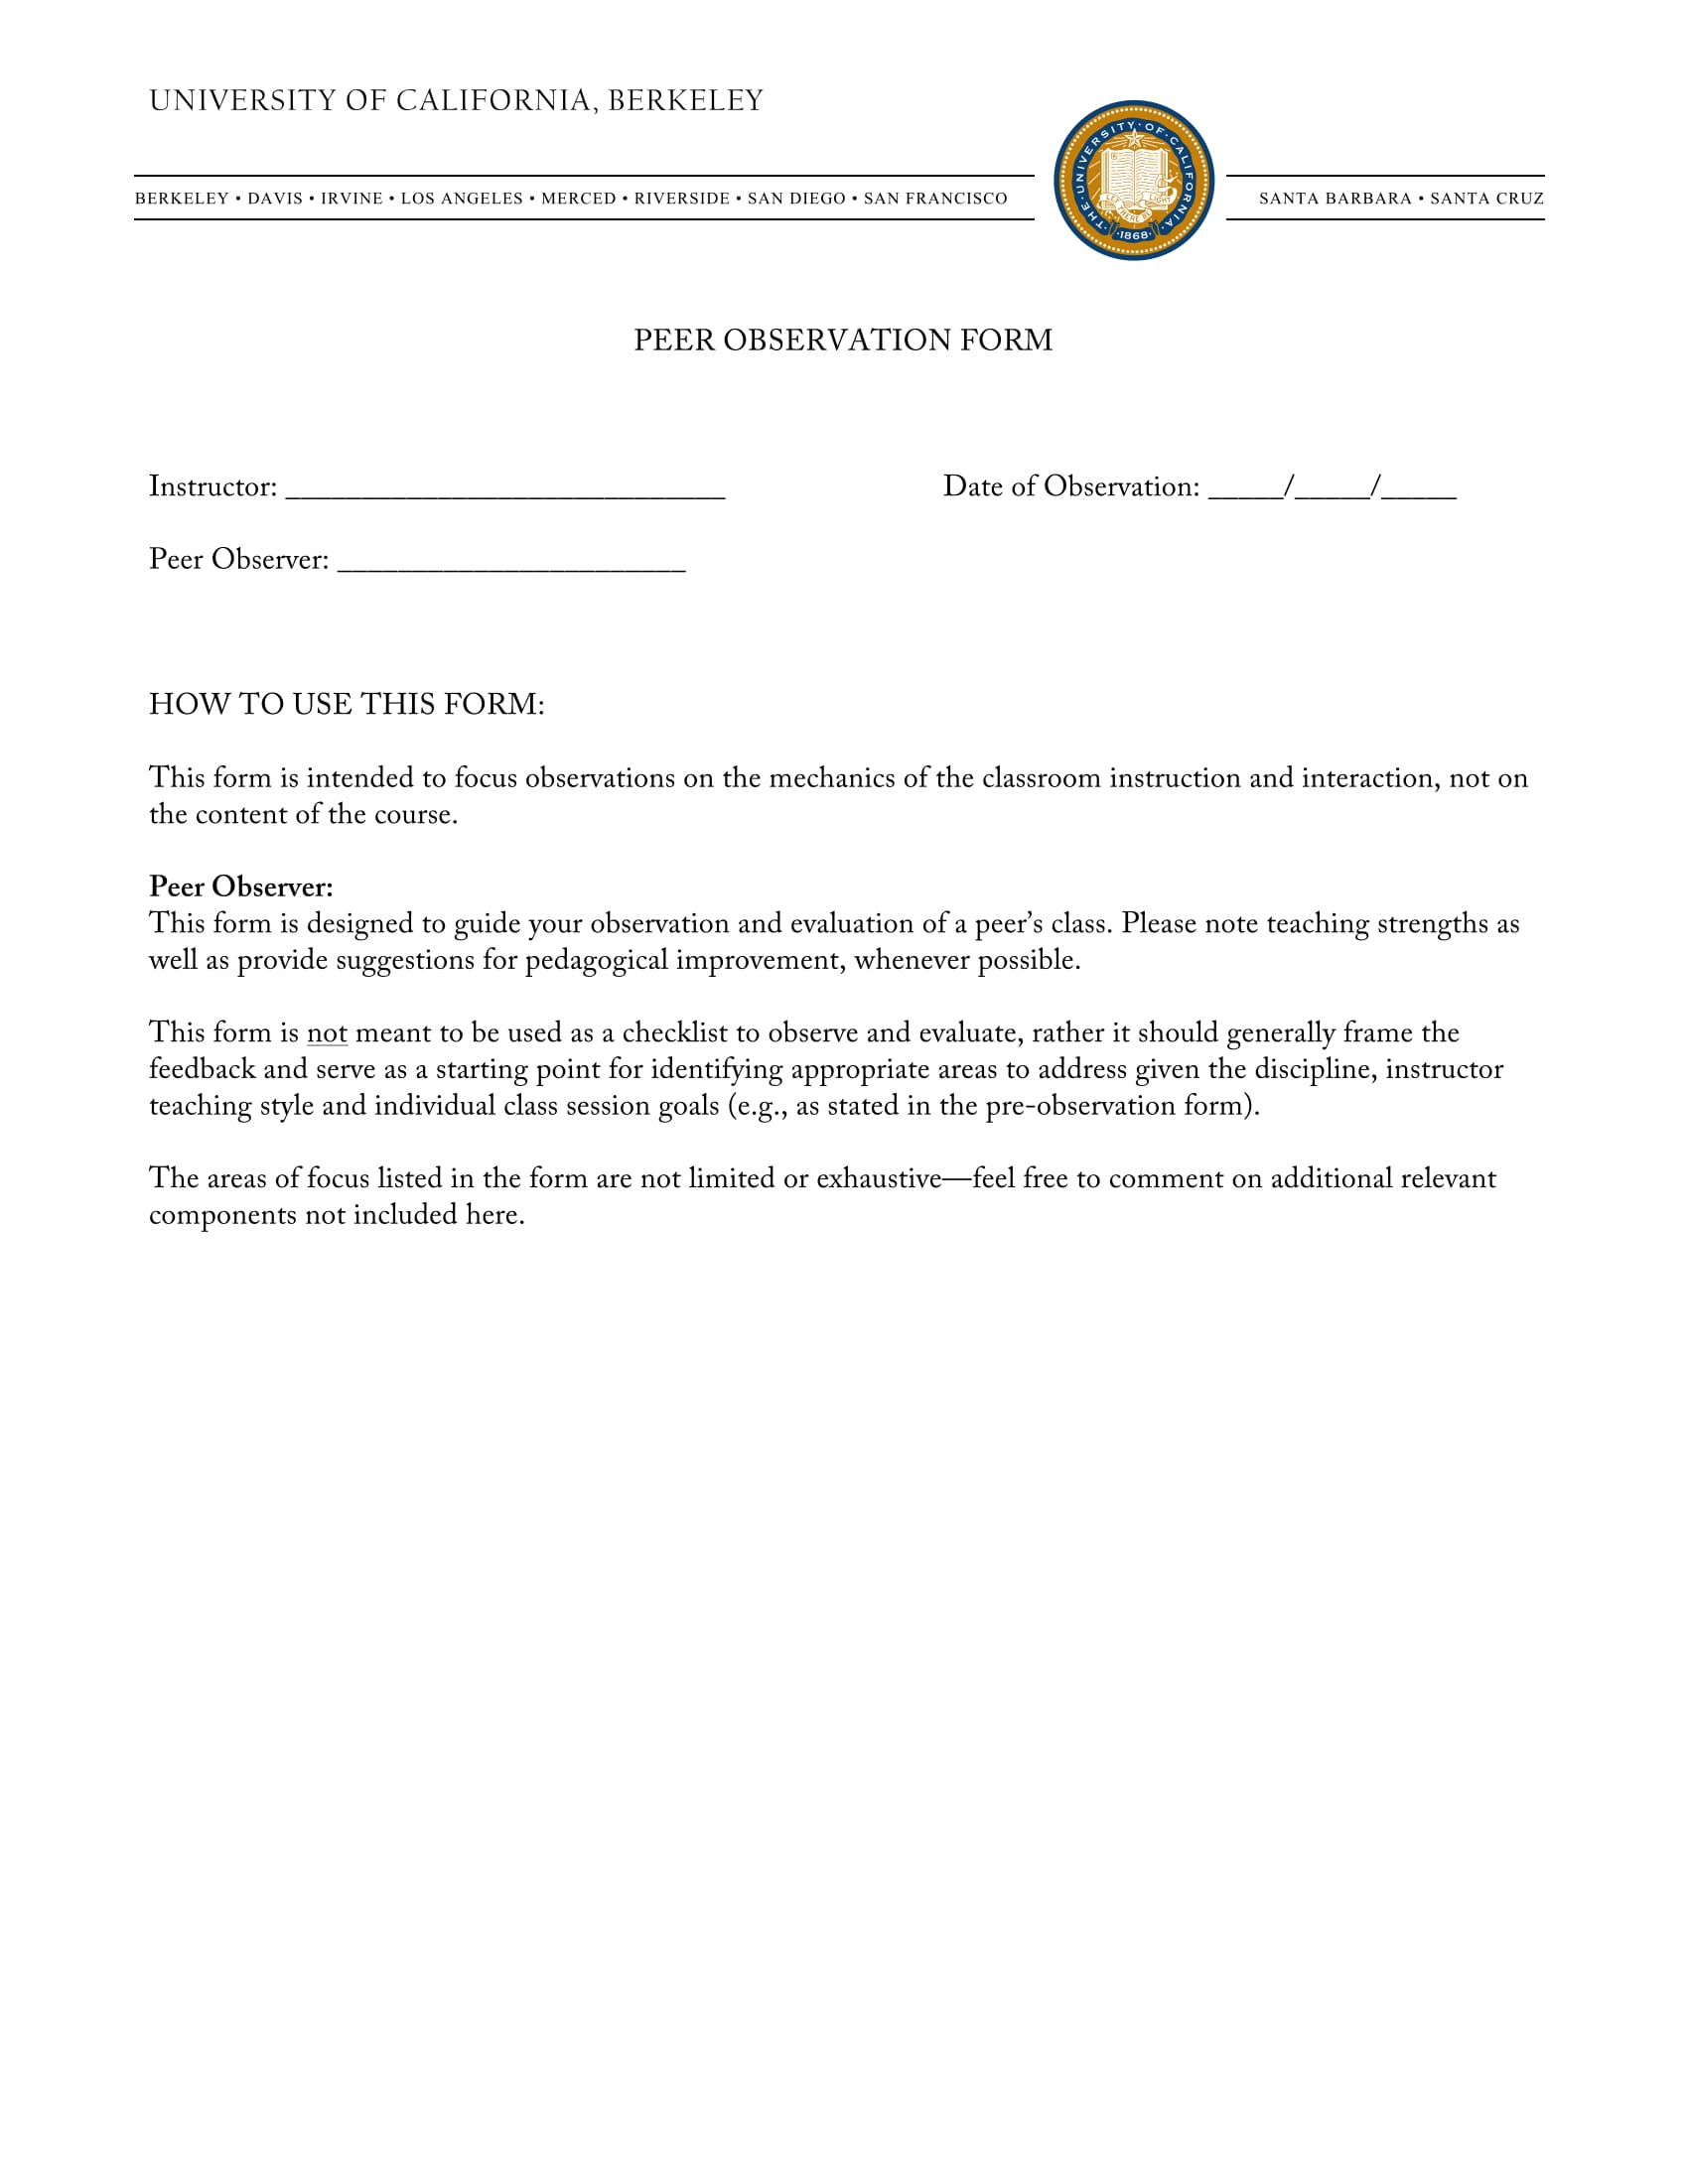 Peer Observation Form Sample